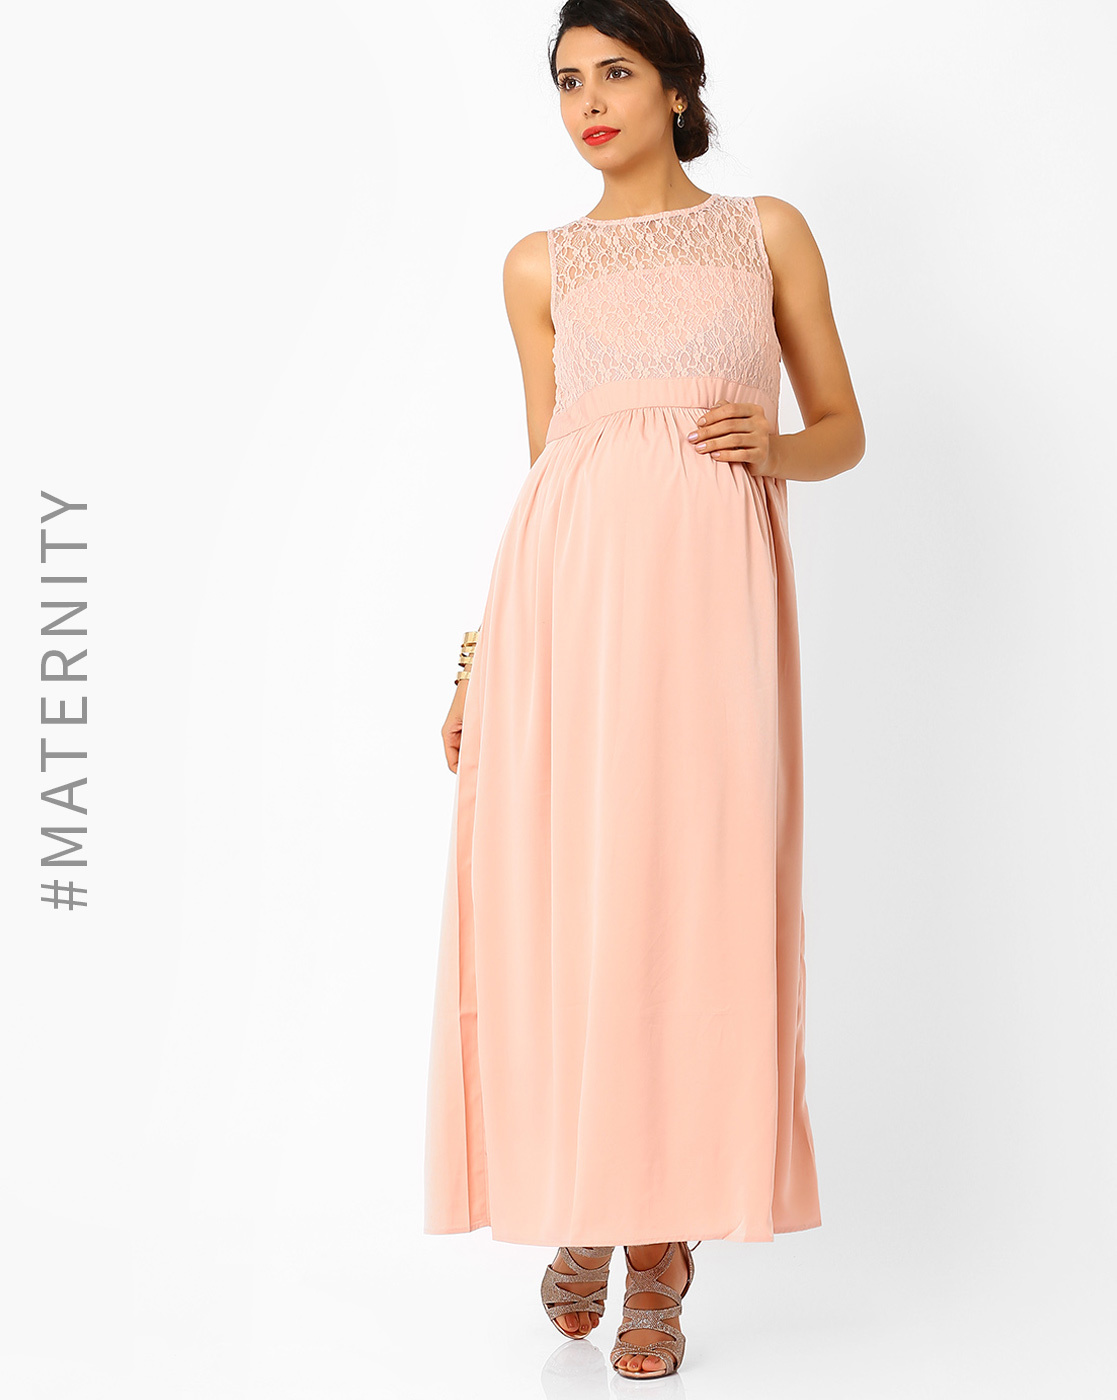 Maternity wear shop tshirts tops dresses shrugs jeans at ajio pink gown maternity maxi dress ombrellifo Image collections